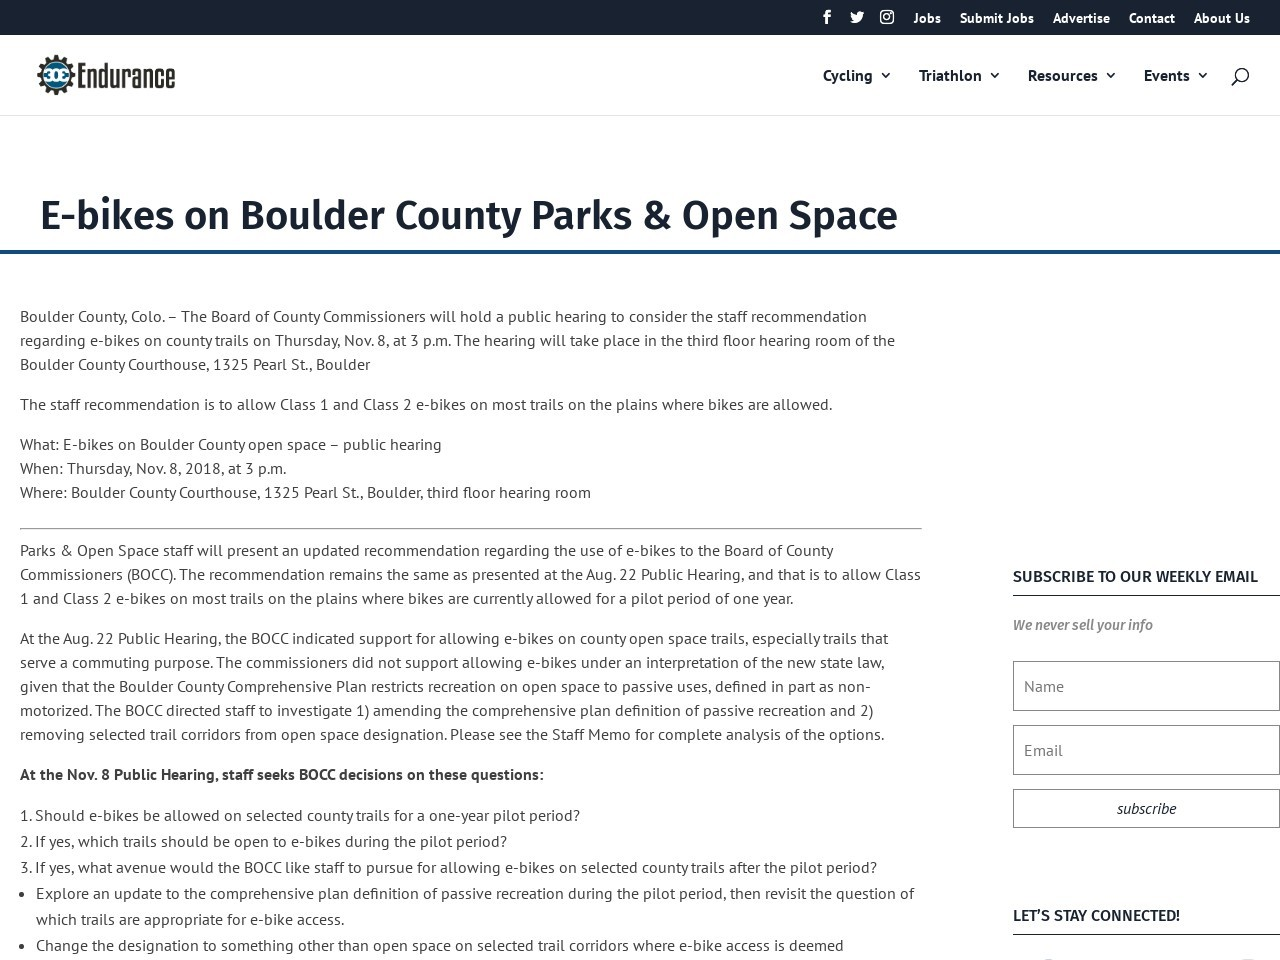 E-bikes on Boulder County Parks & Open Space